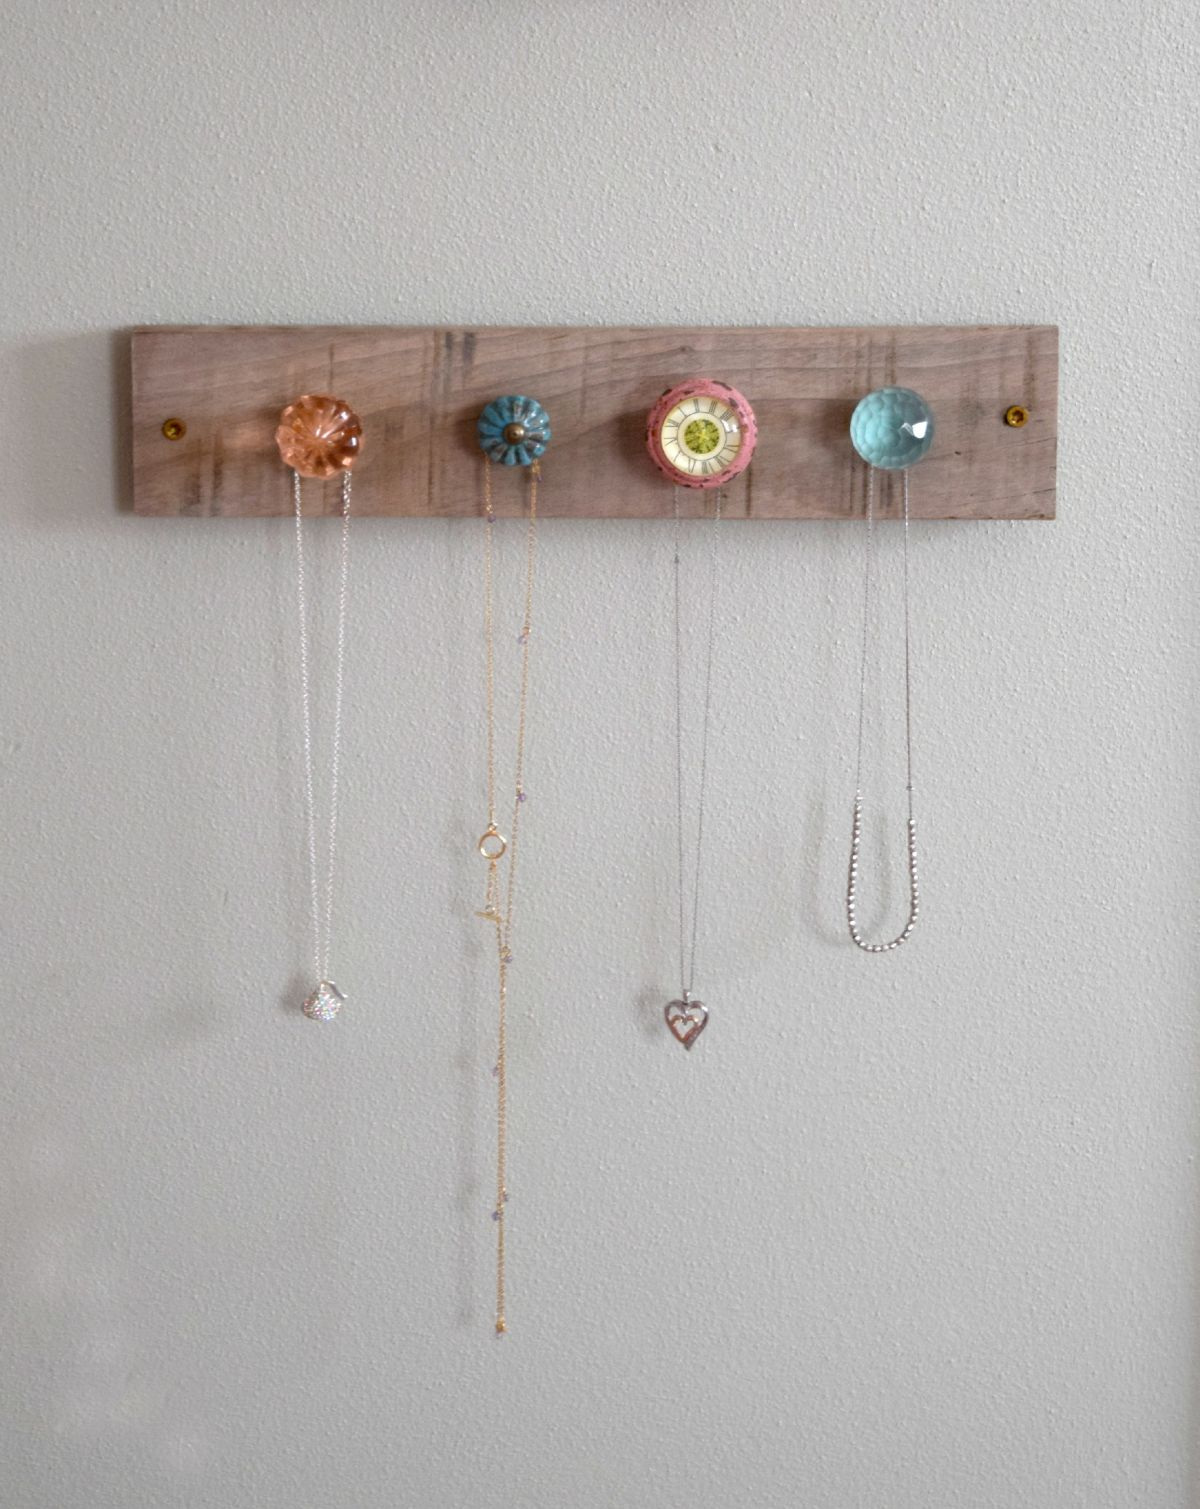 DIY jewelry wall display – girl bedroom